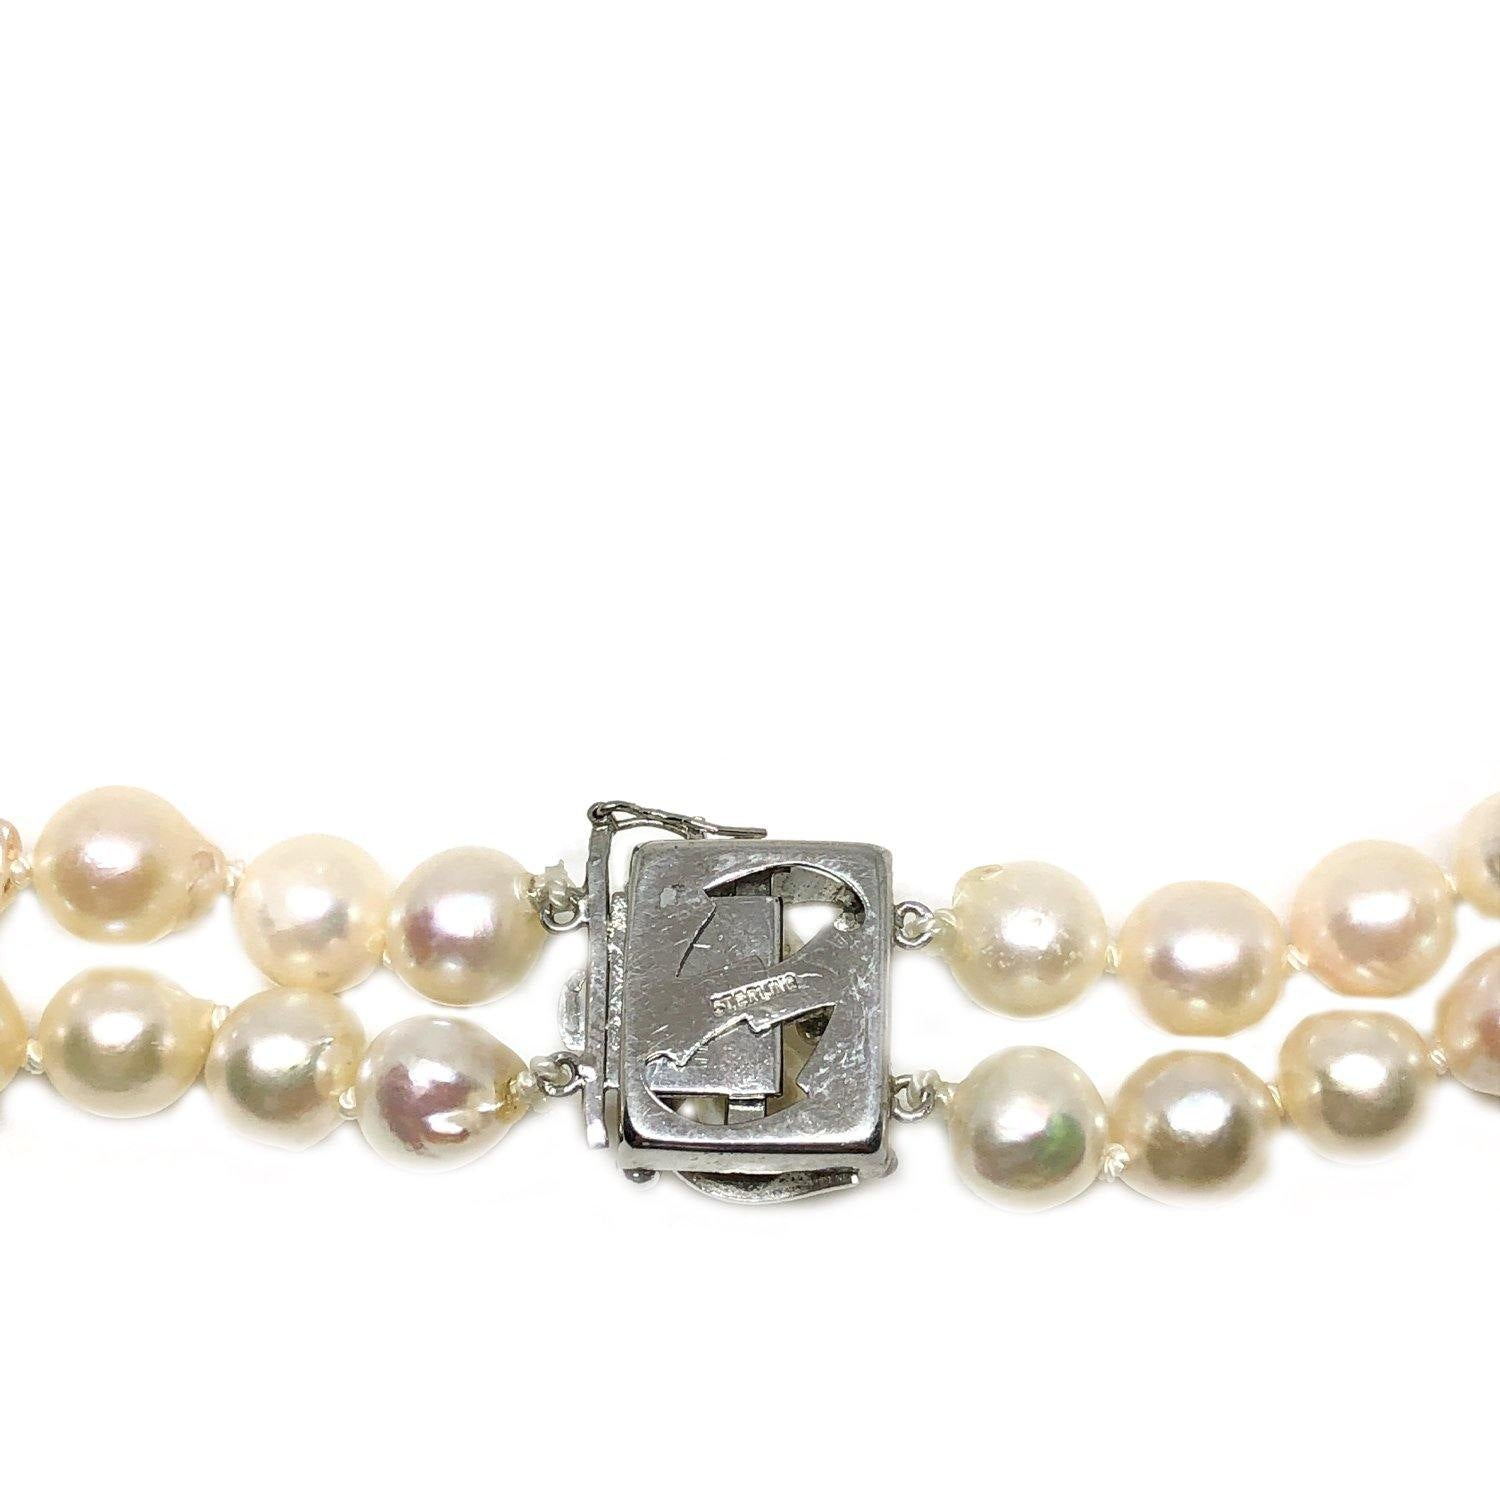 Nouveau Japanese Saltwater Akoya Cultured Pearl Double Strand Necklace-Sterling Silver 22-23.50 Inch